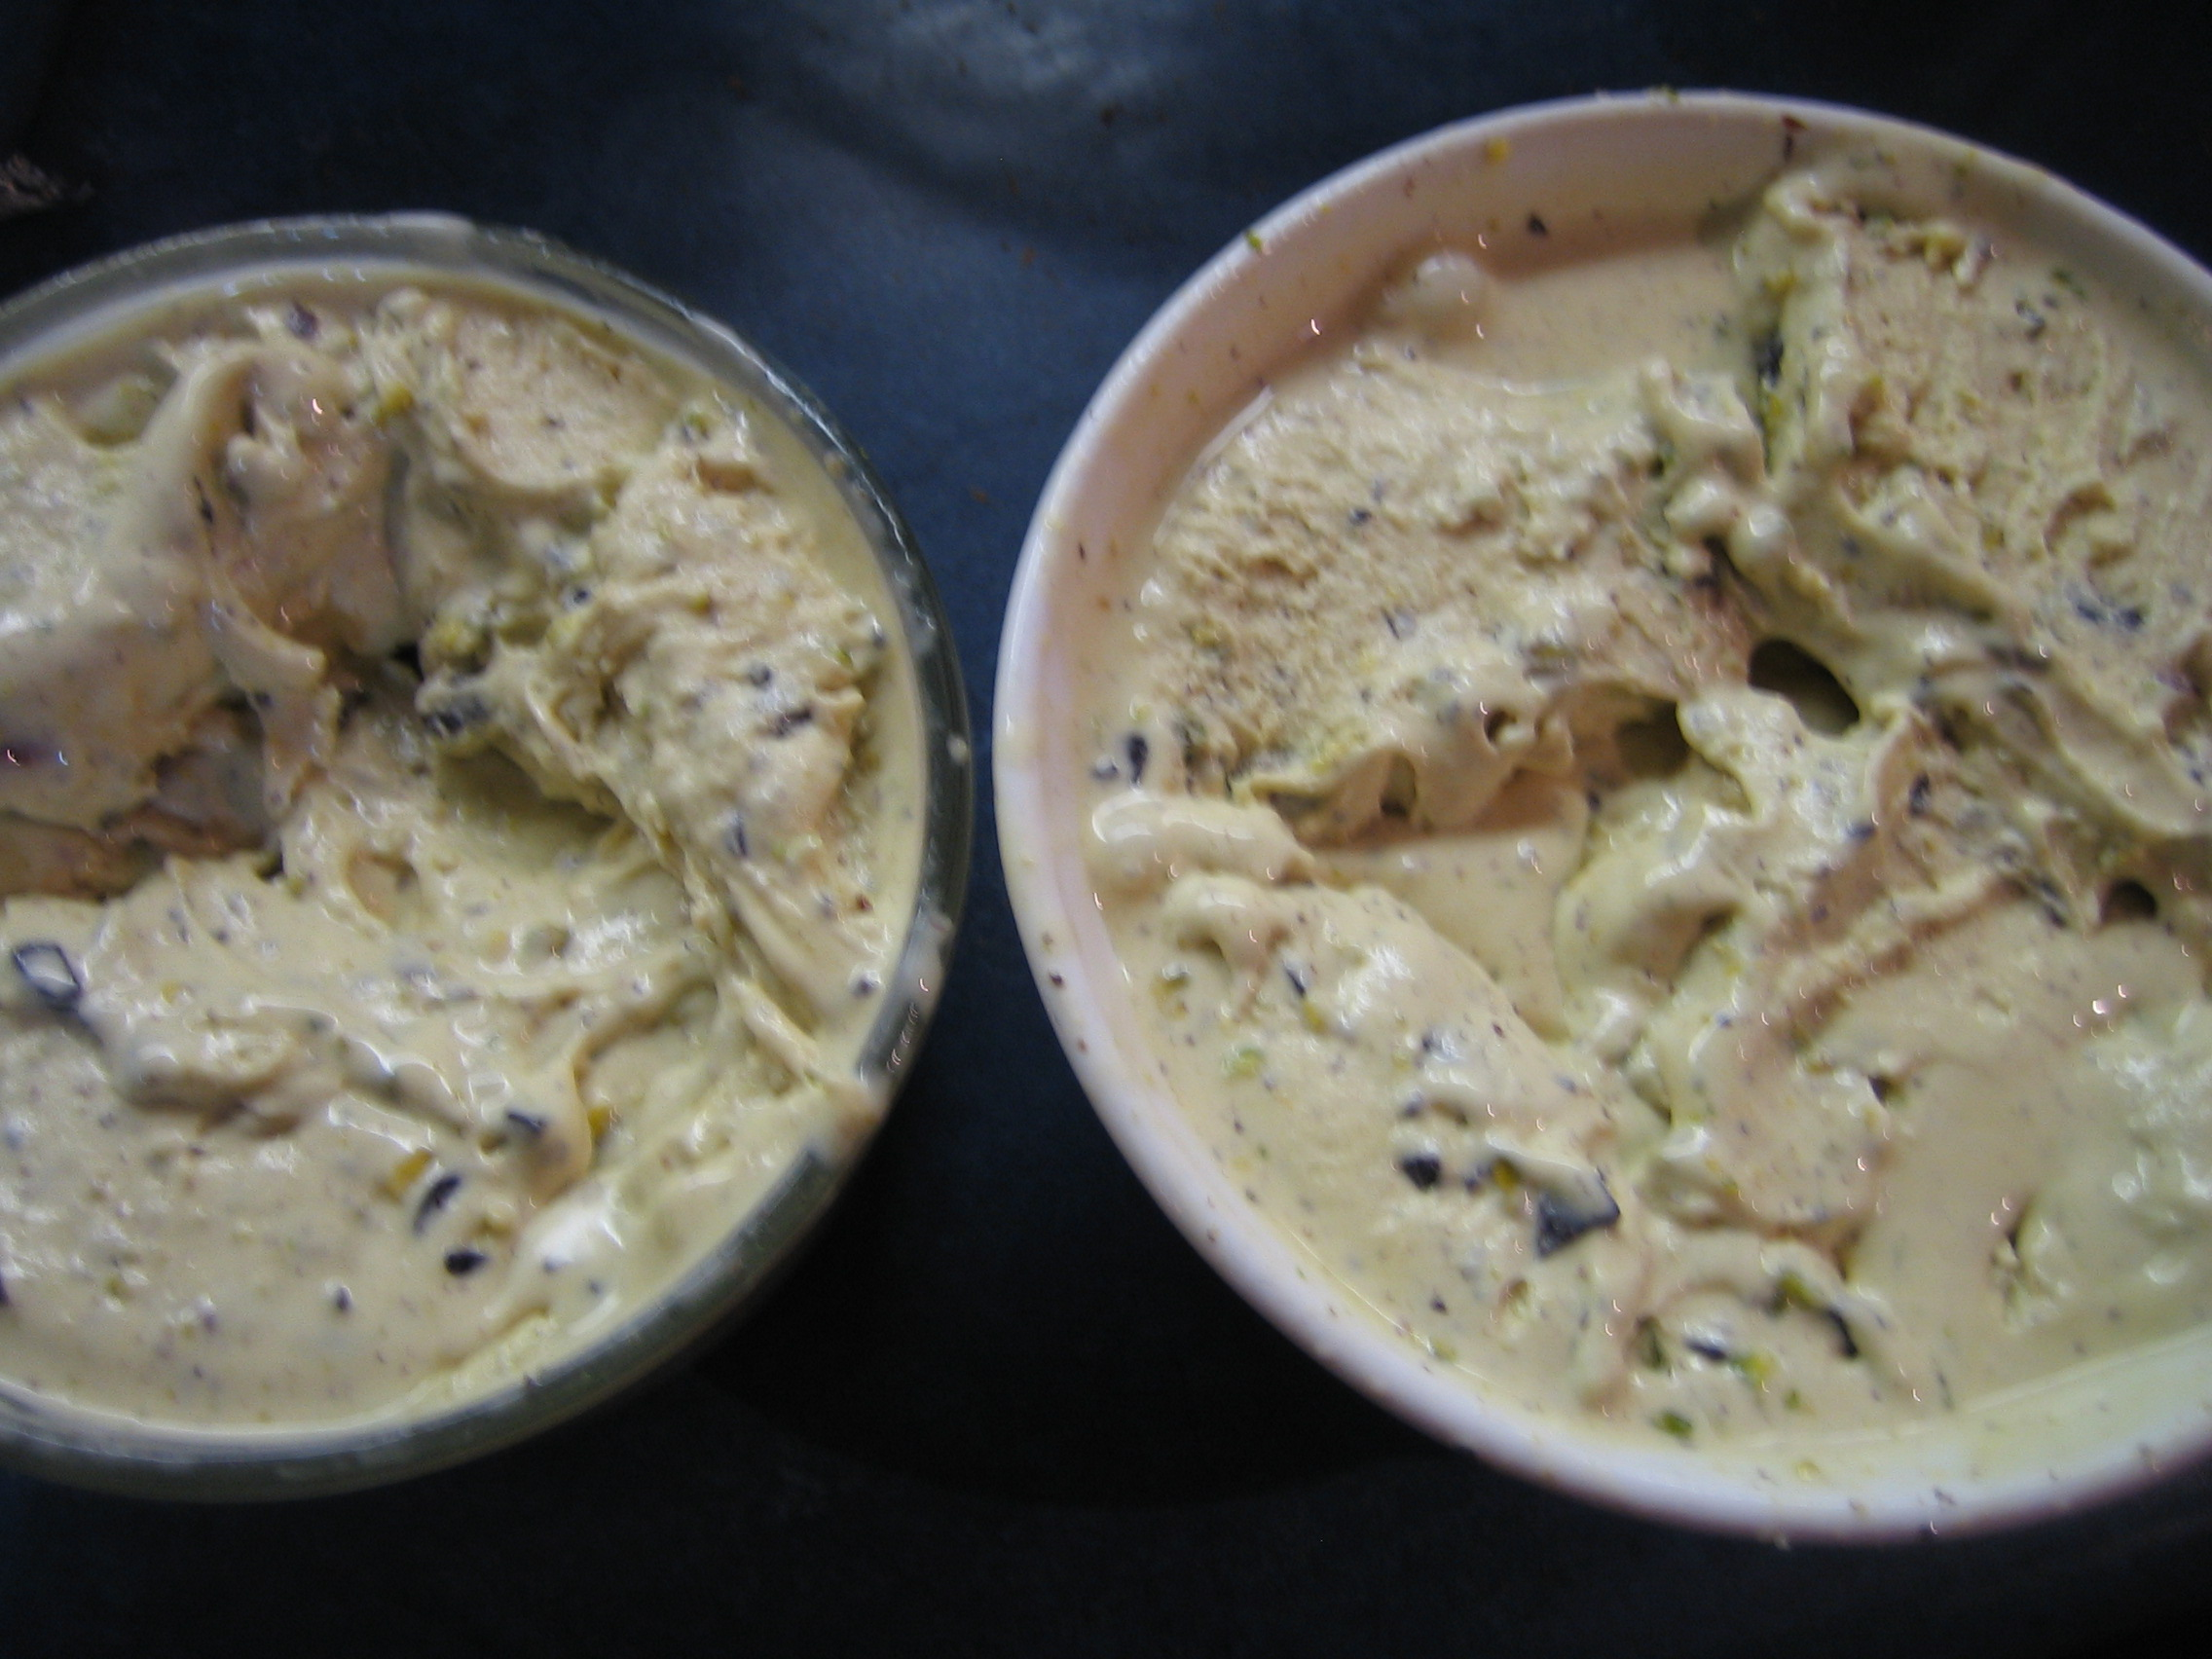 Pistachio Chocolate Cardamom Shiver Ice Cream